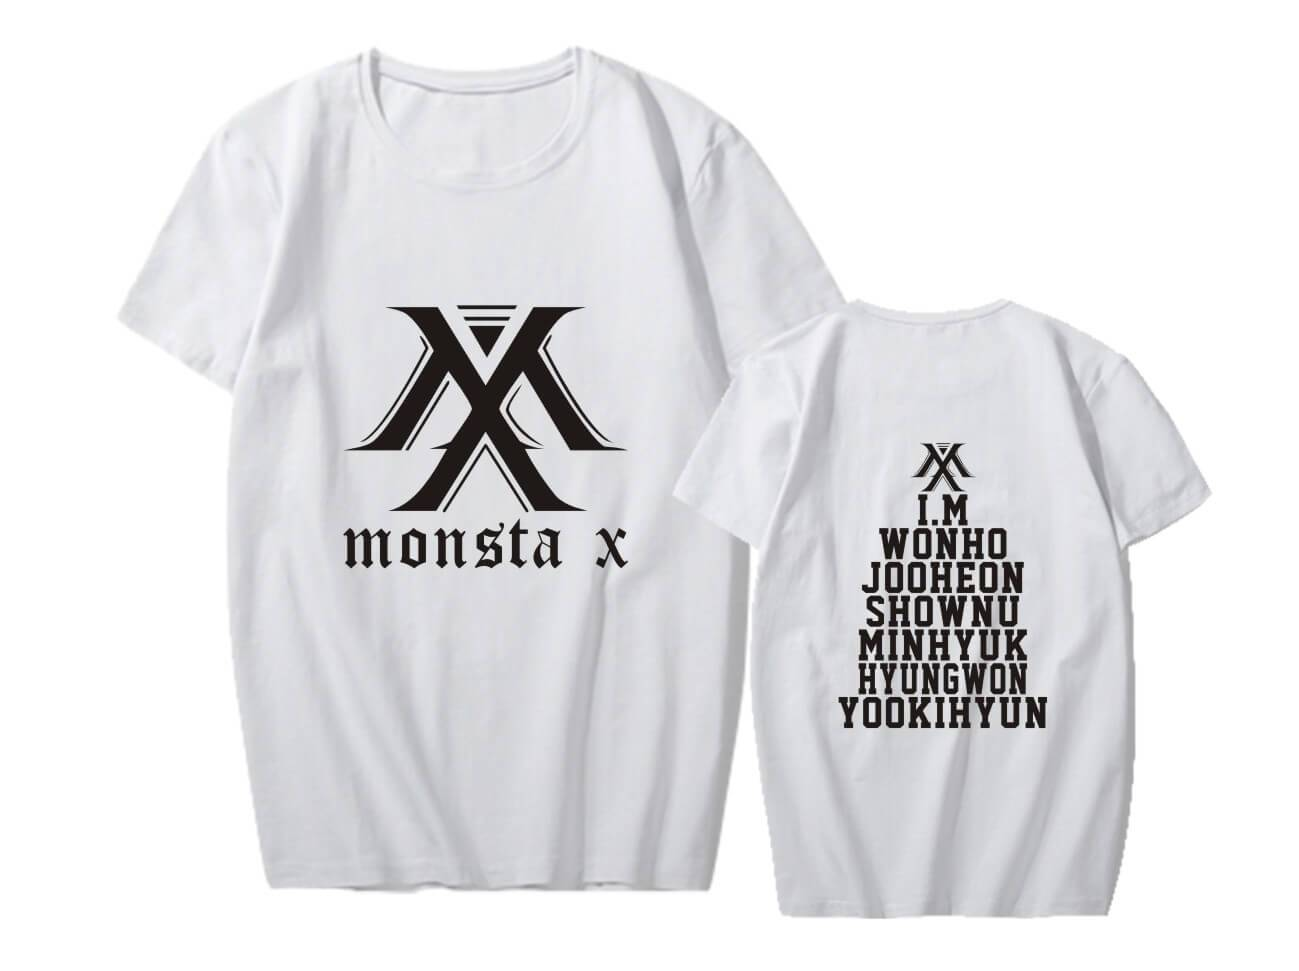 MONSTA X Member Name Printed T-shirt